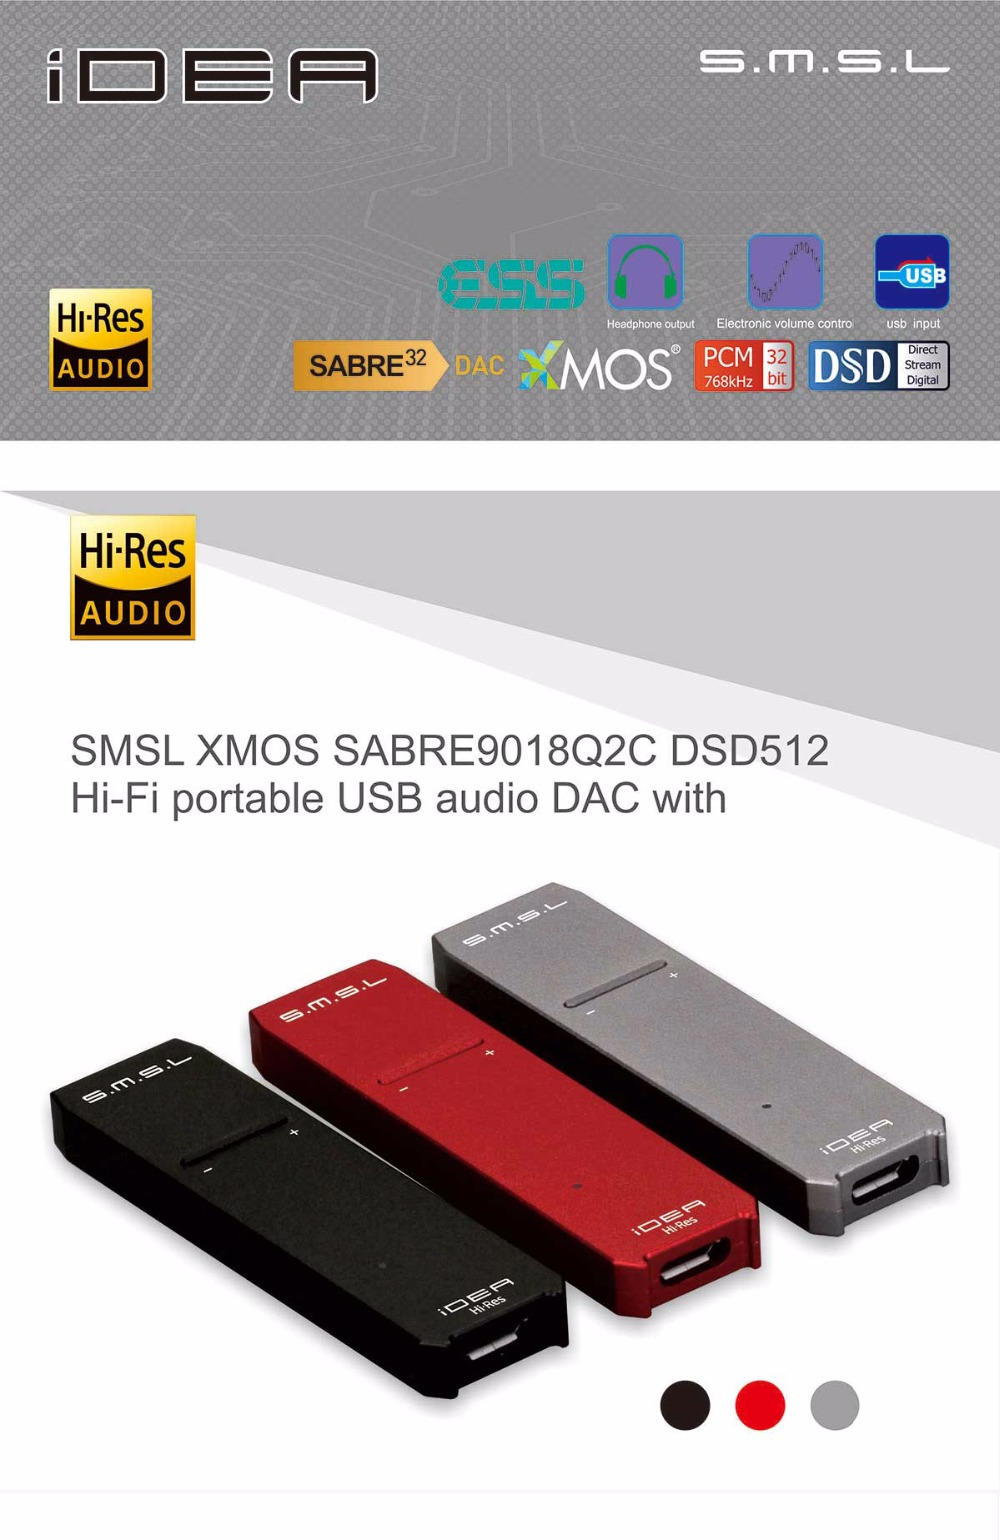 SMSL IDEA MINI HIFI SABRE9018Q2C XMOS DSD512 Hifi Audio Portable USB DAC and headphone amplifier 3.5mm headphone jack output